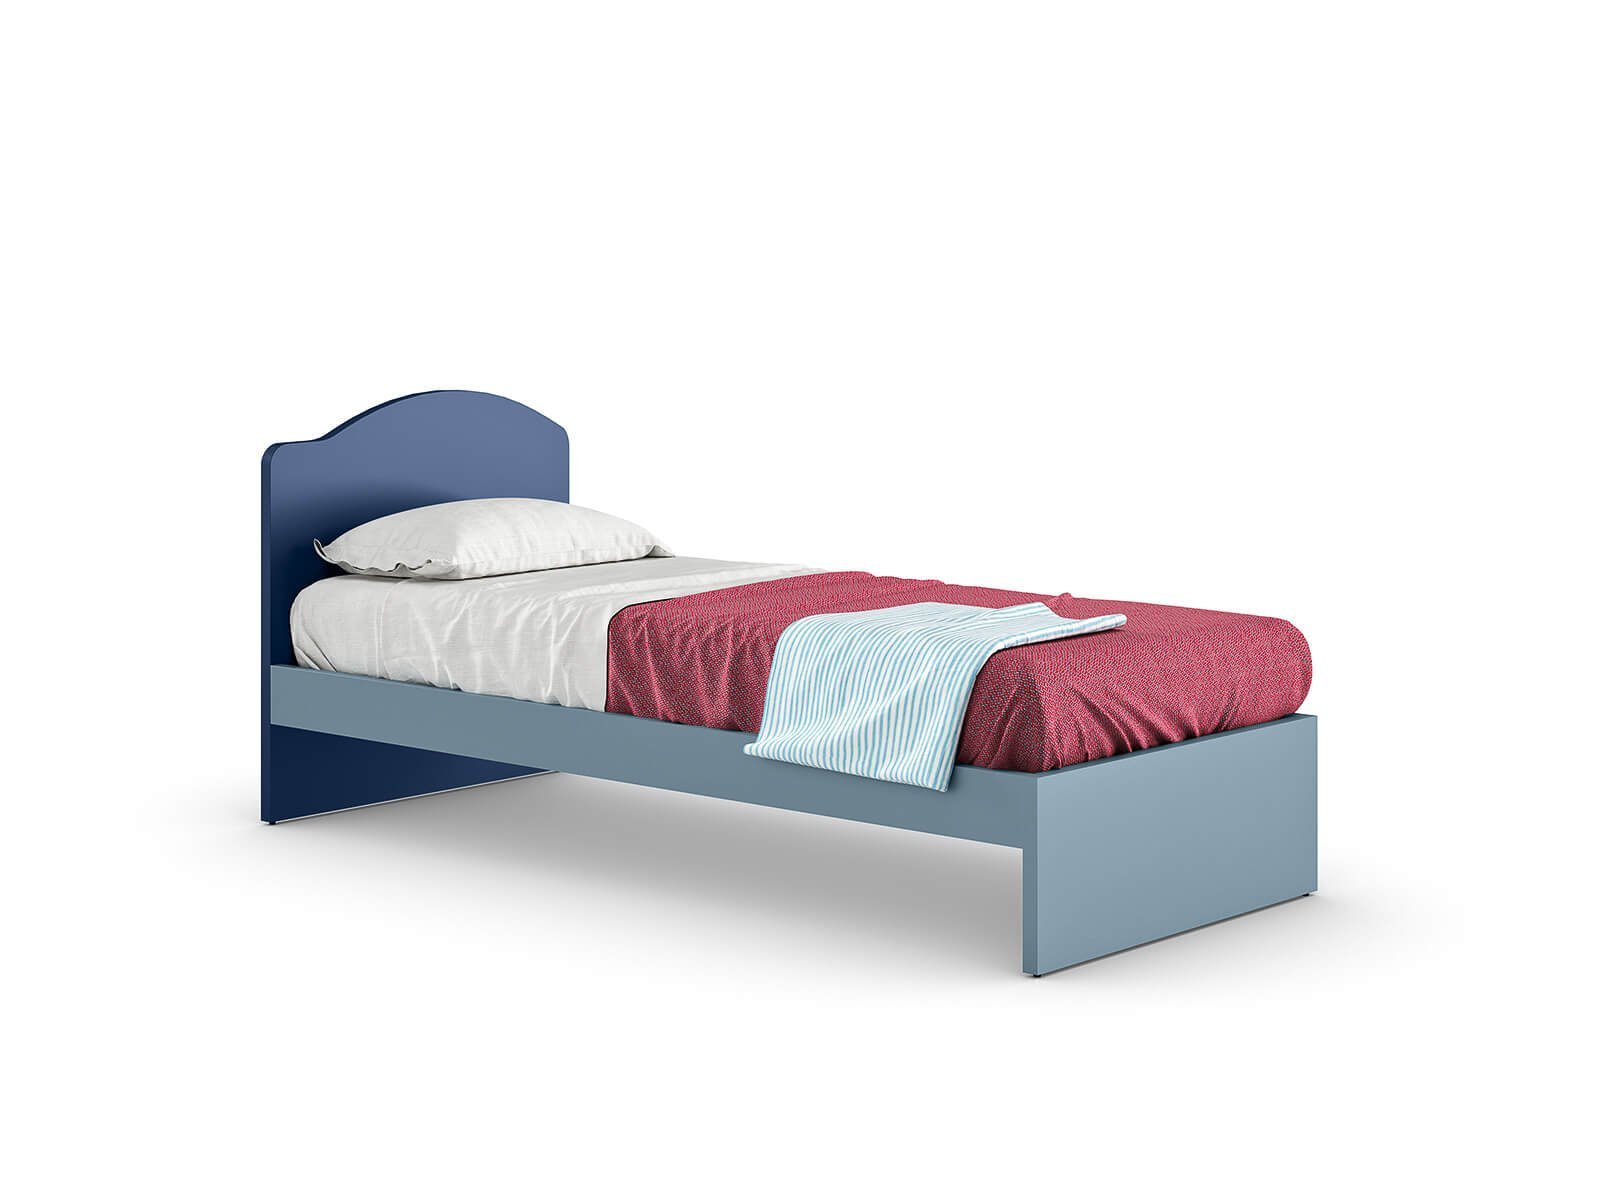 Ola single bed